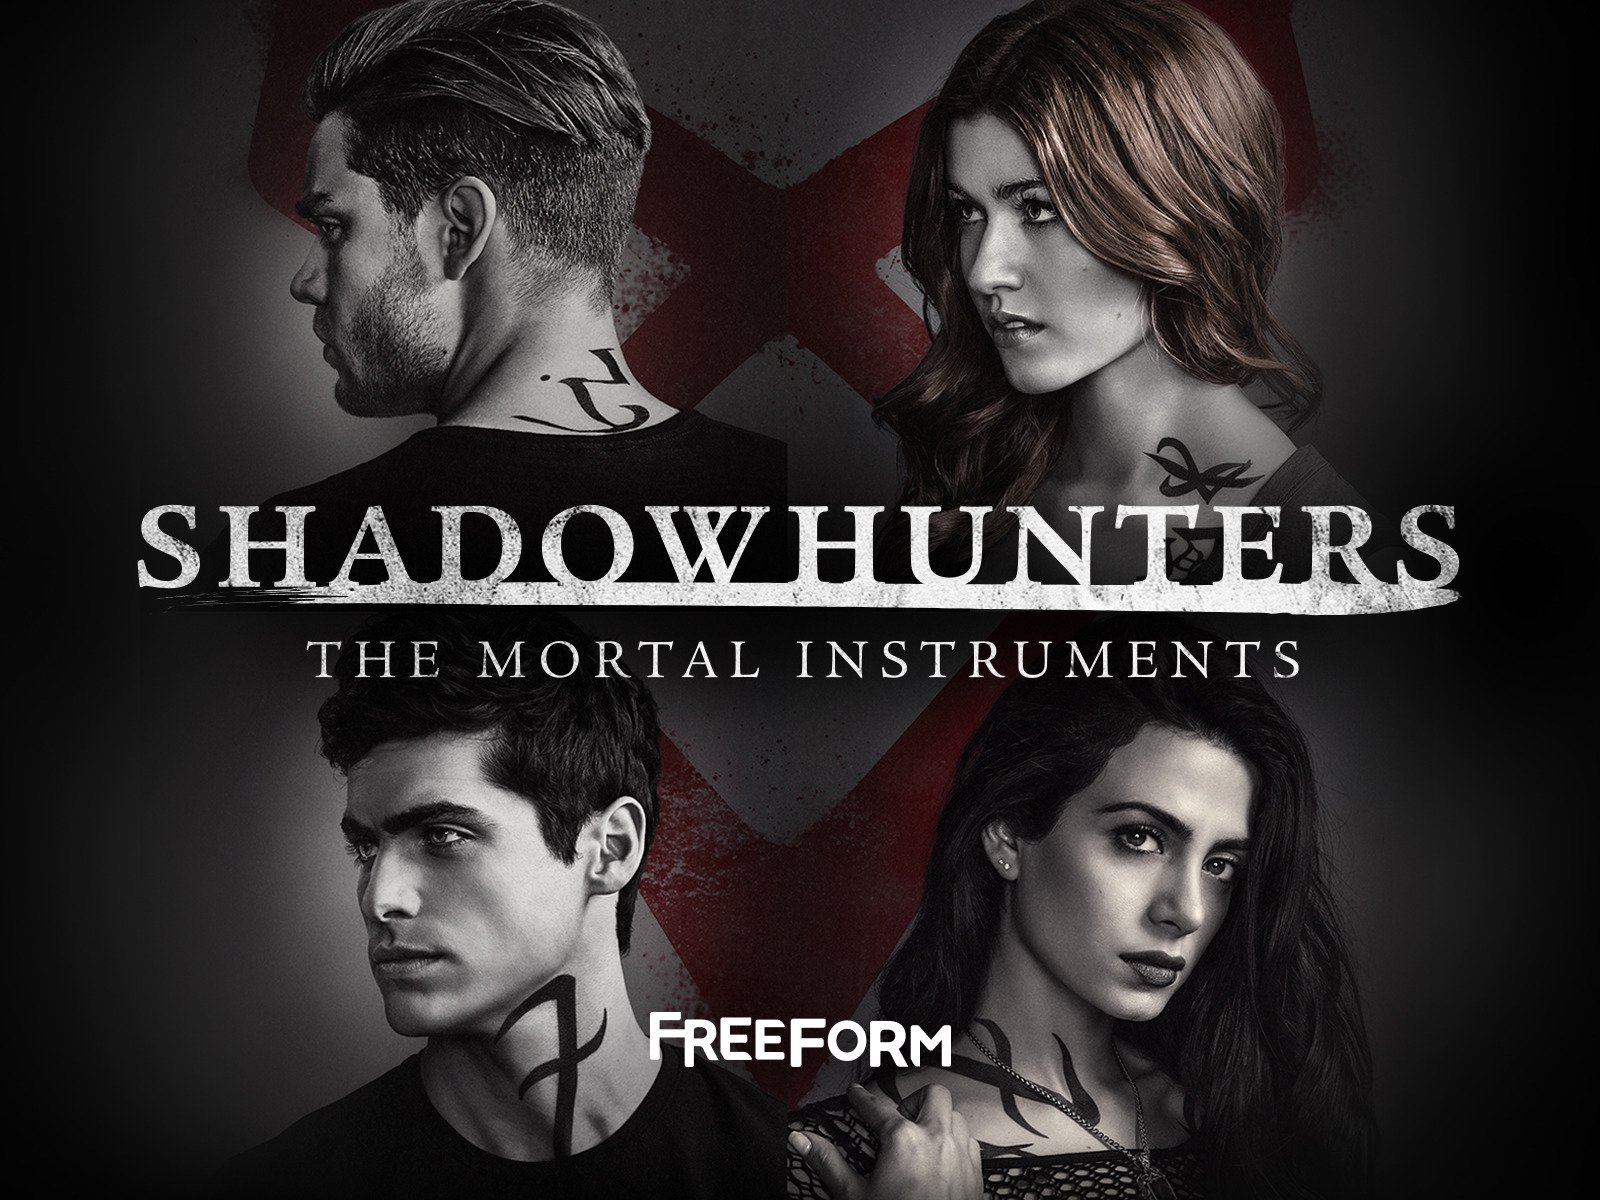 shadowhunters season 2 download hd